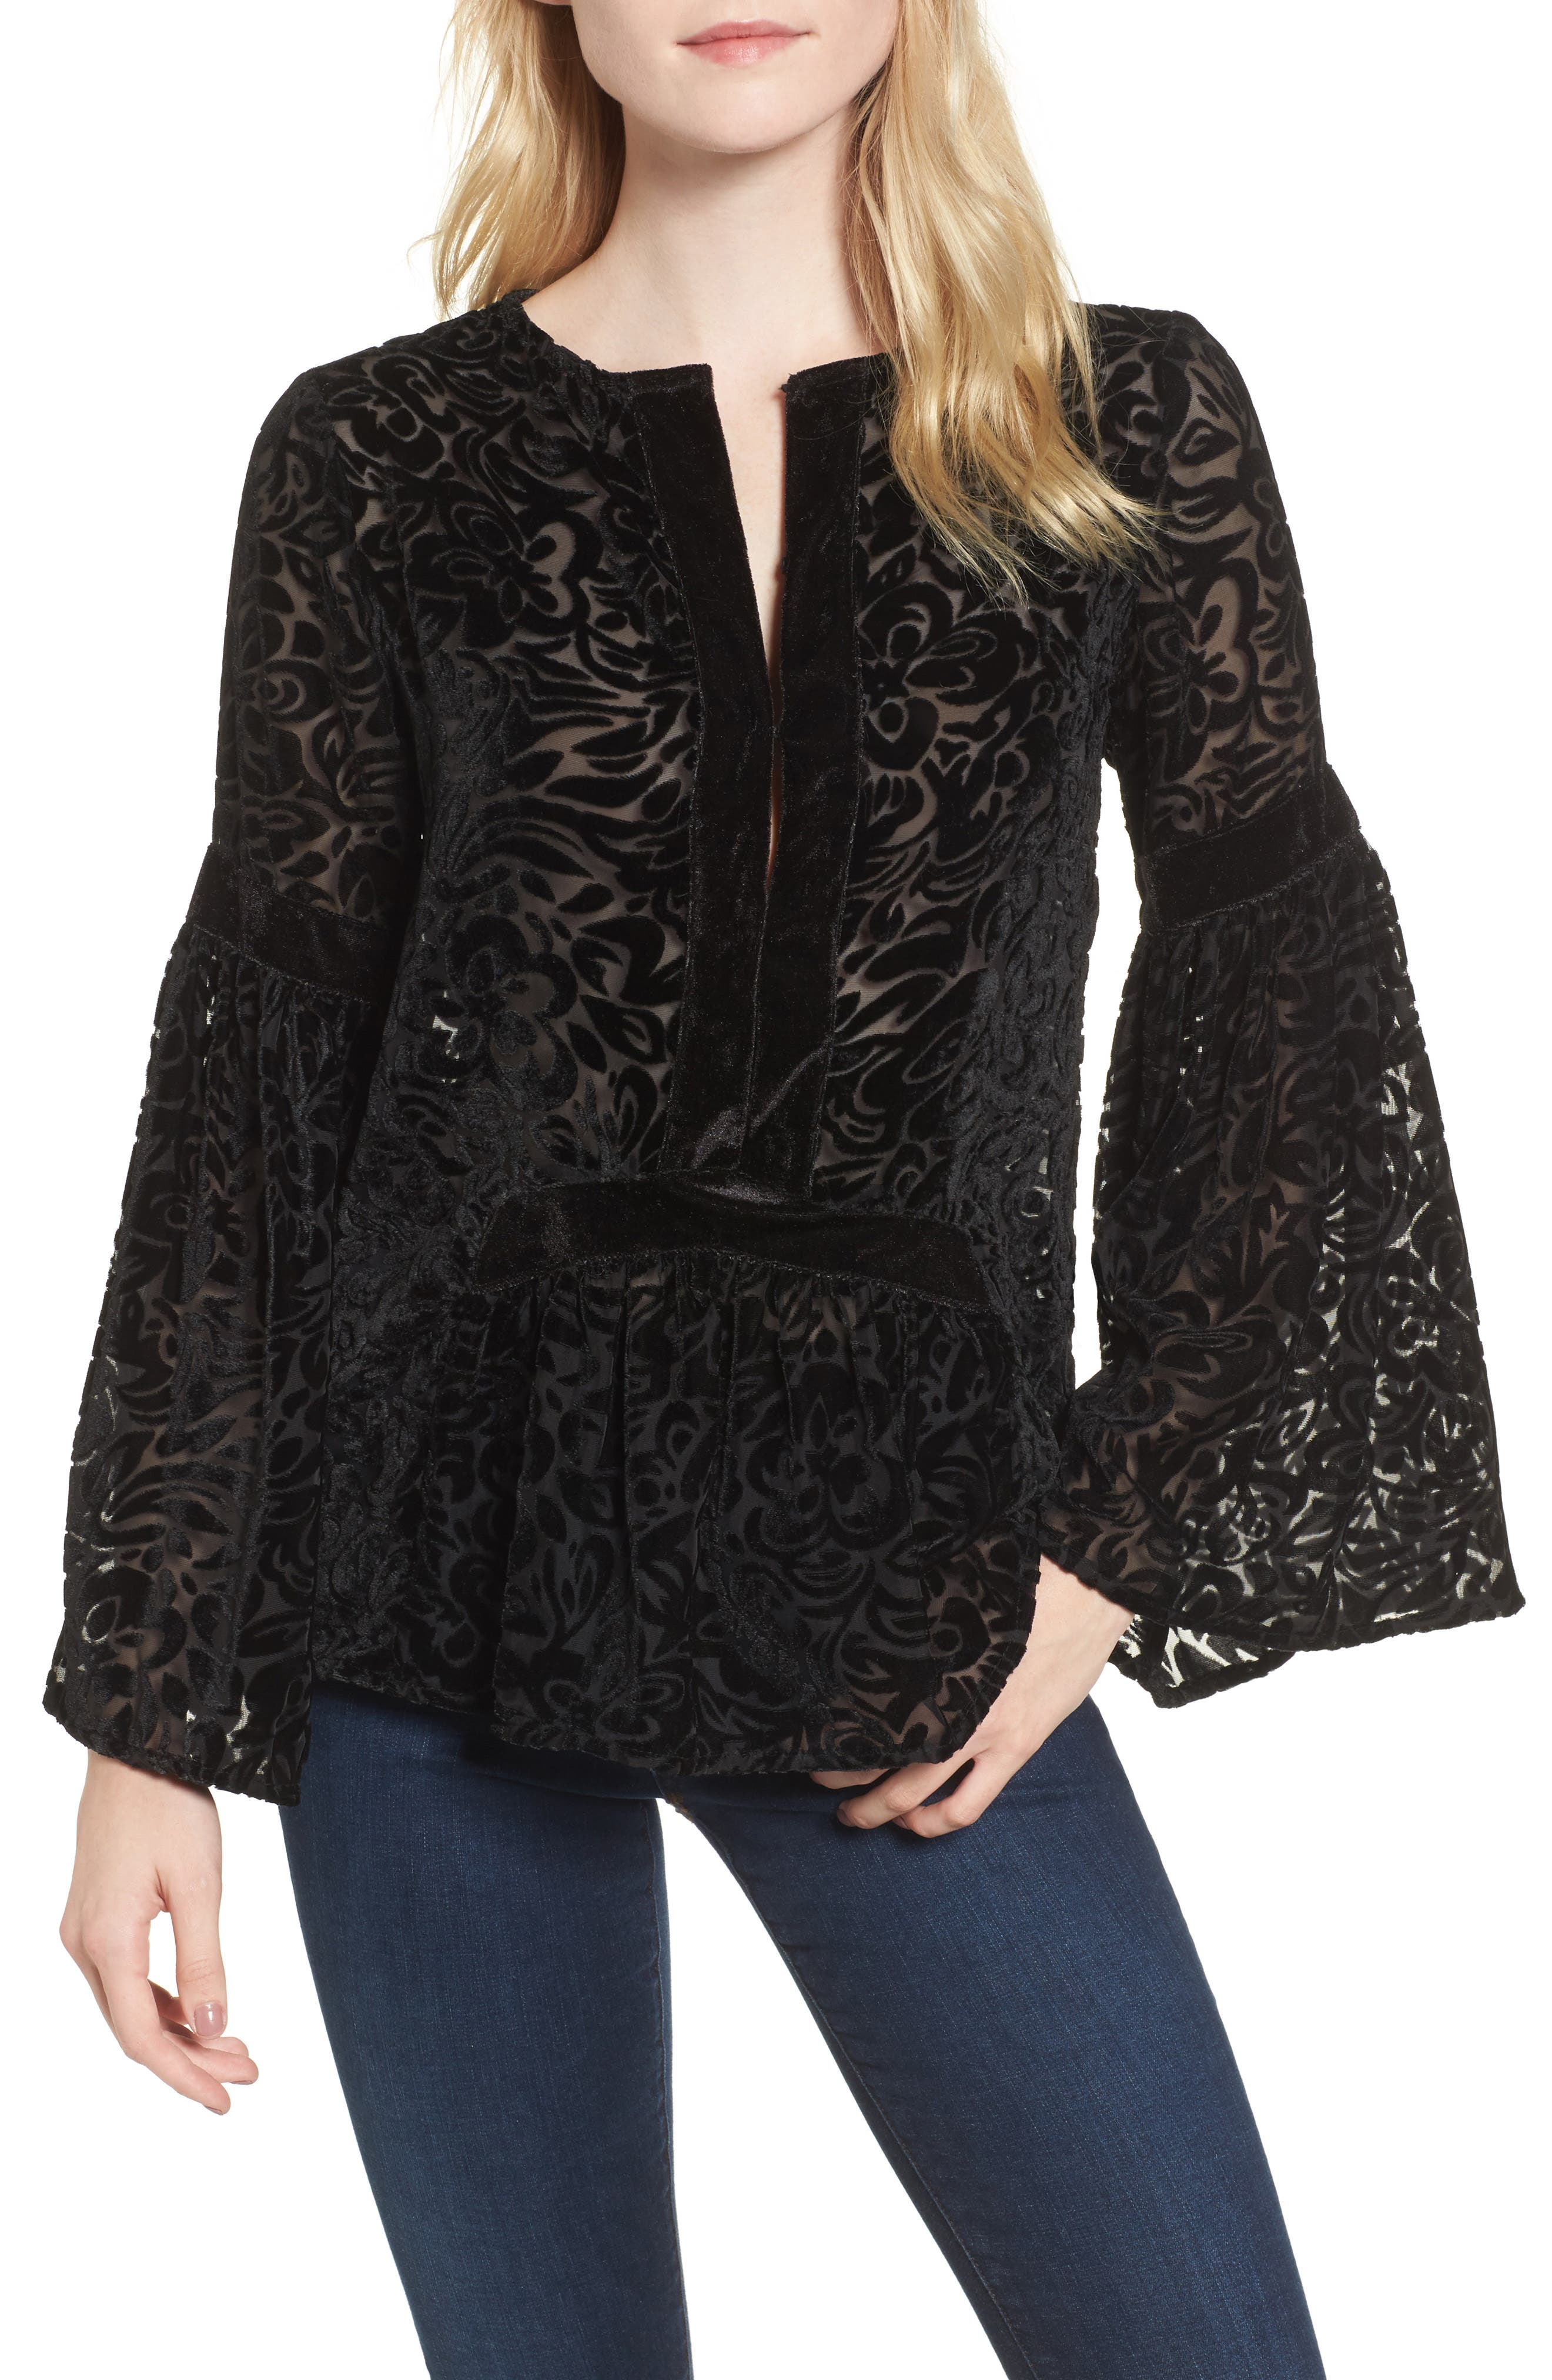 Main Image - KAS NEW YORK Velvet Burnout Bell Sleeve Peasant Top